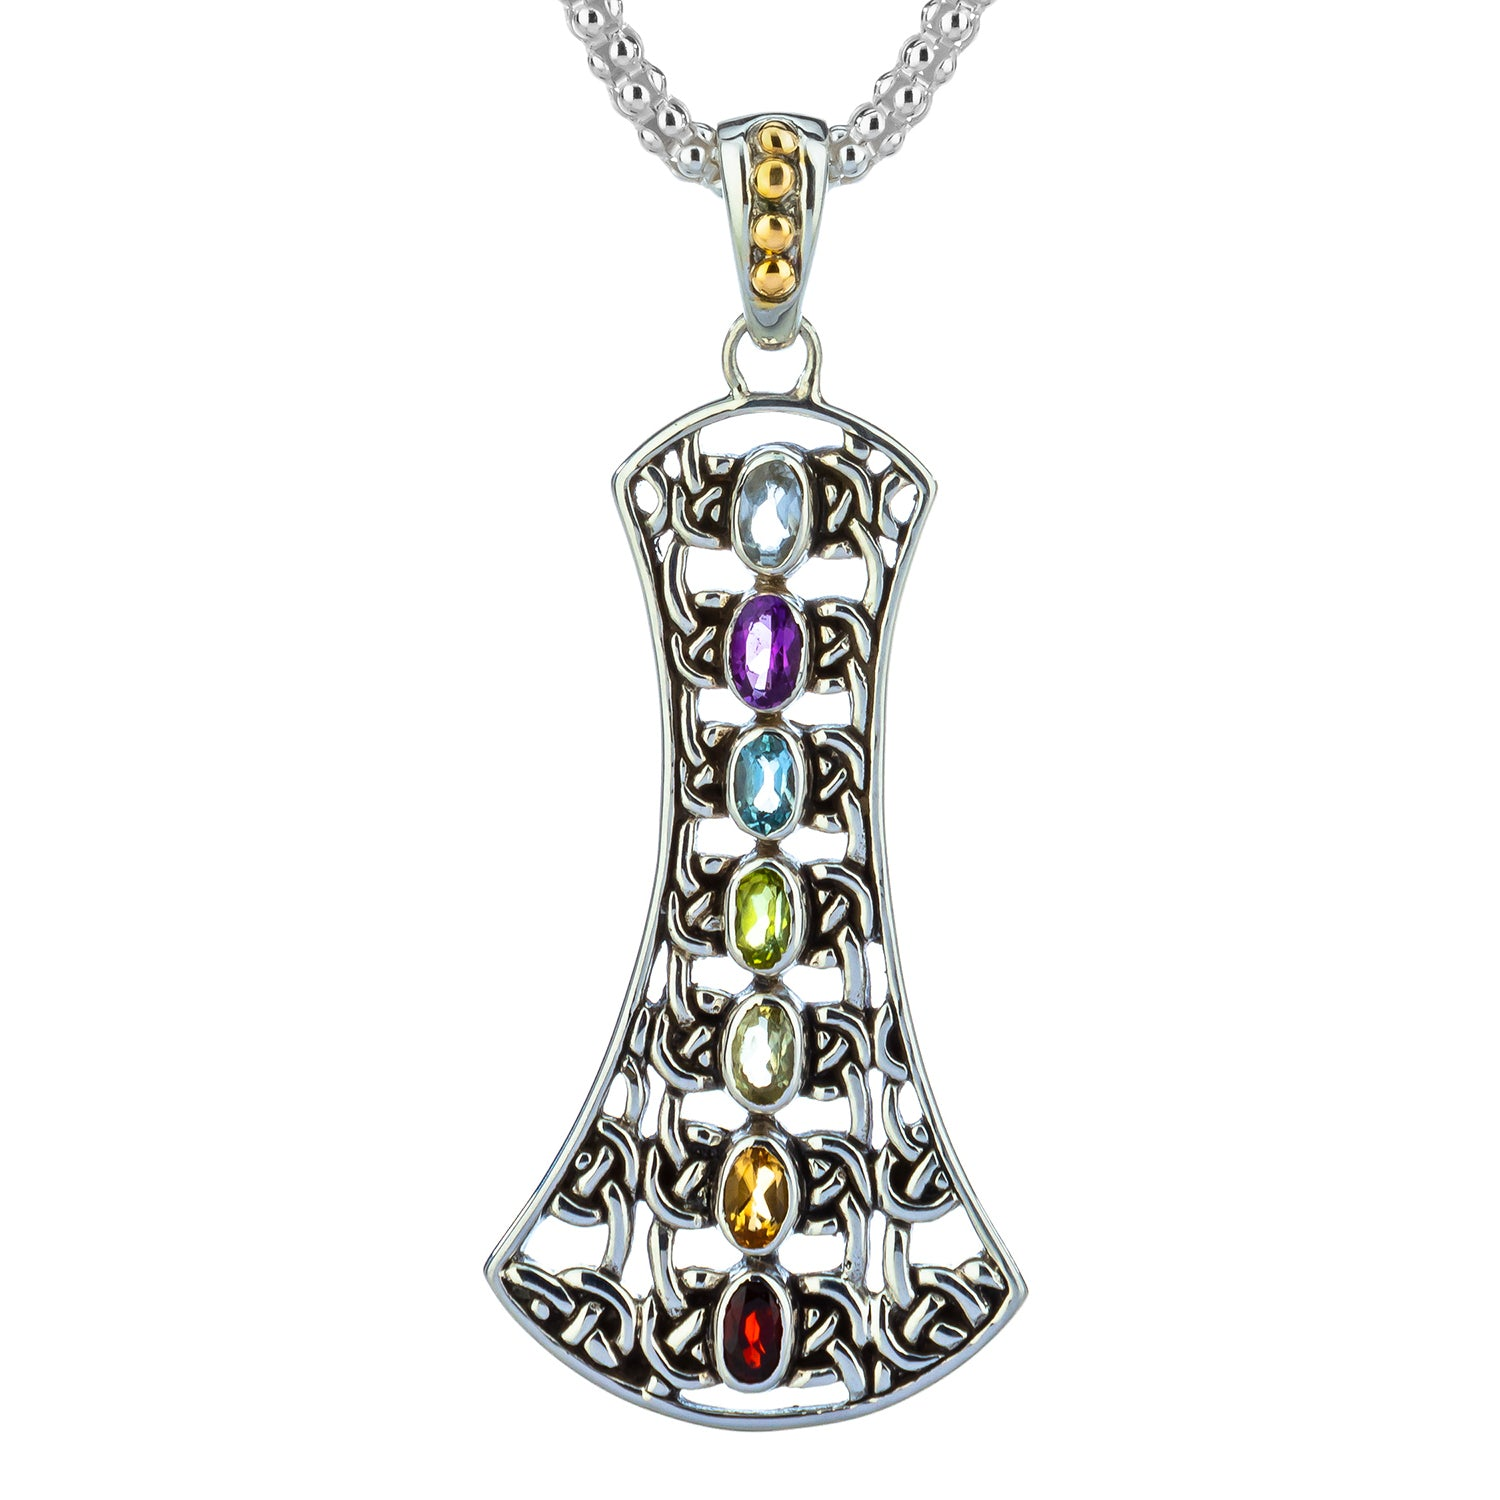 Pendant 18k Chakra Pendant with Semiprecious Stones from welch and company jewelers near syracuse ny